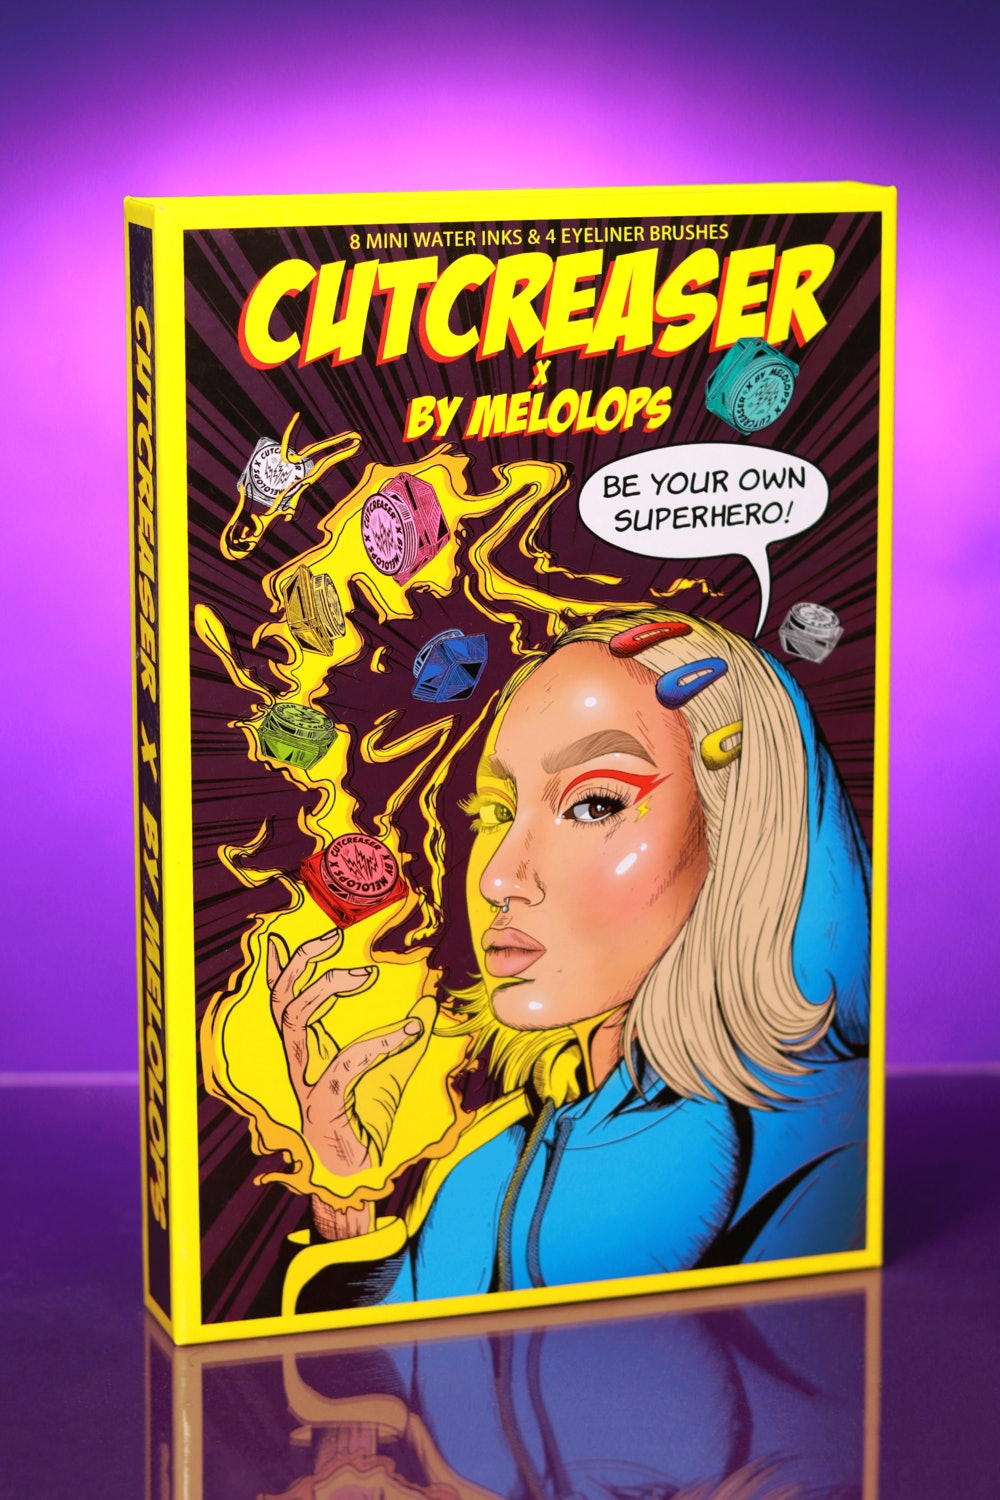 Cutcreaser x By Melolops Comic Book Kit